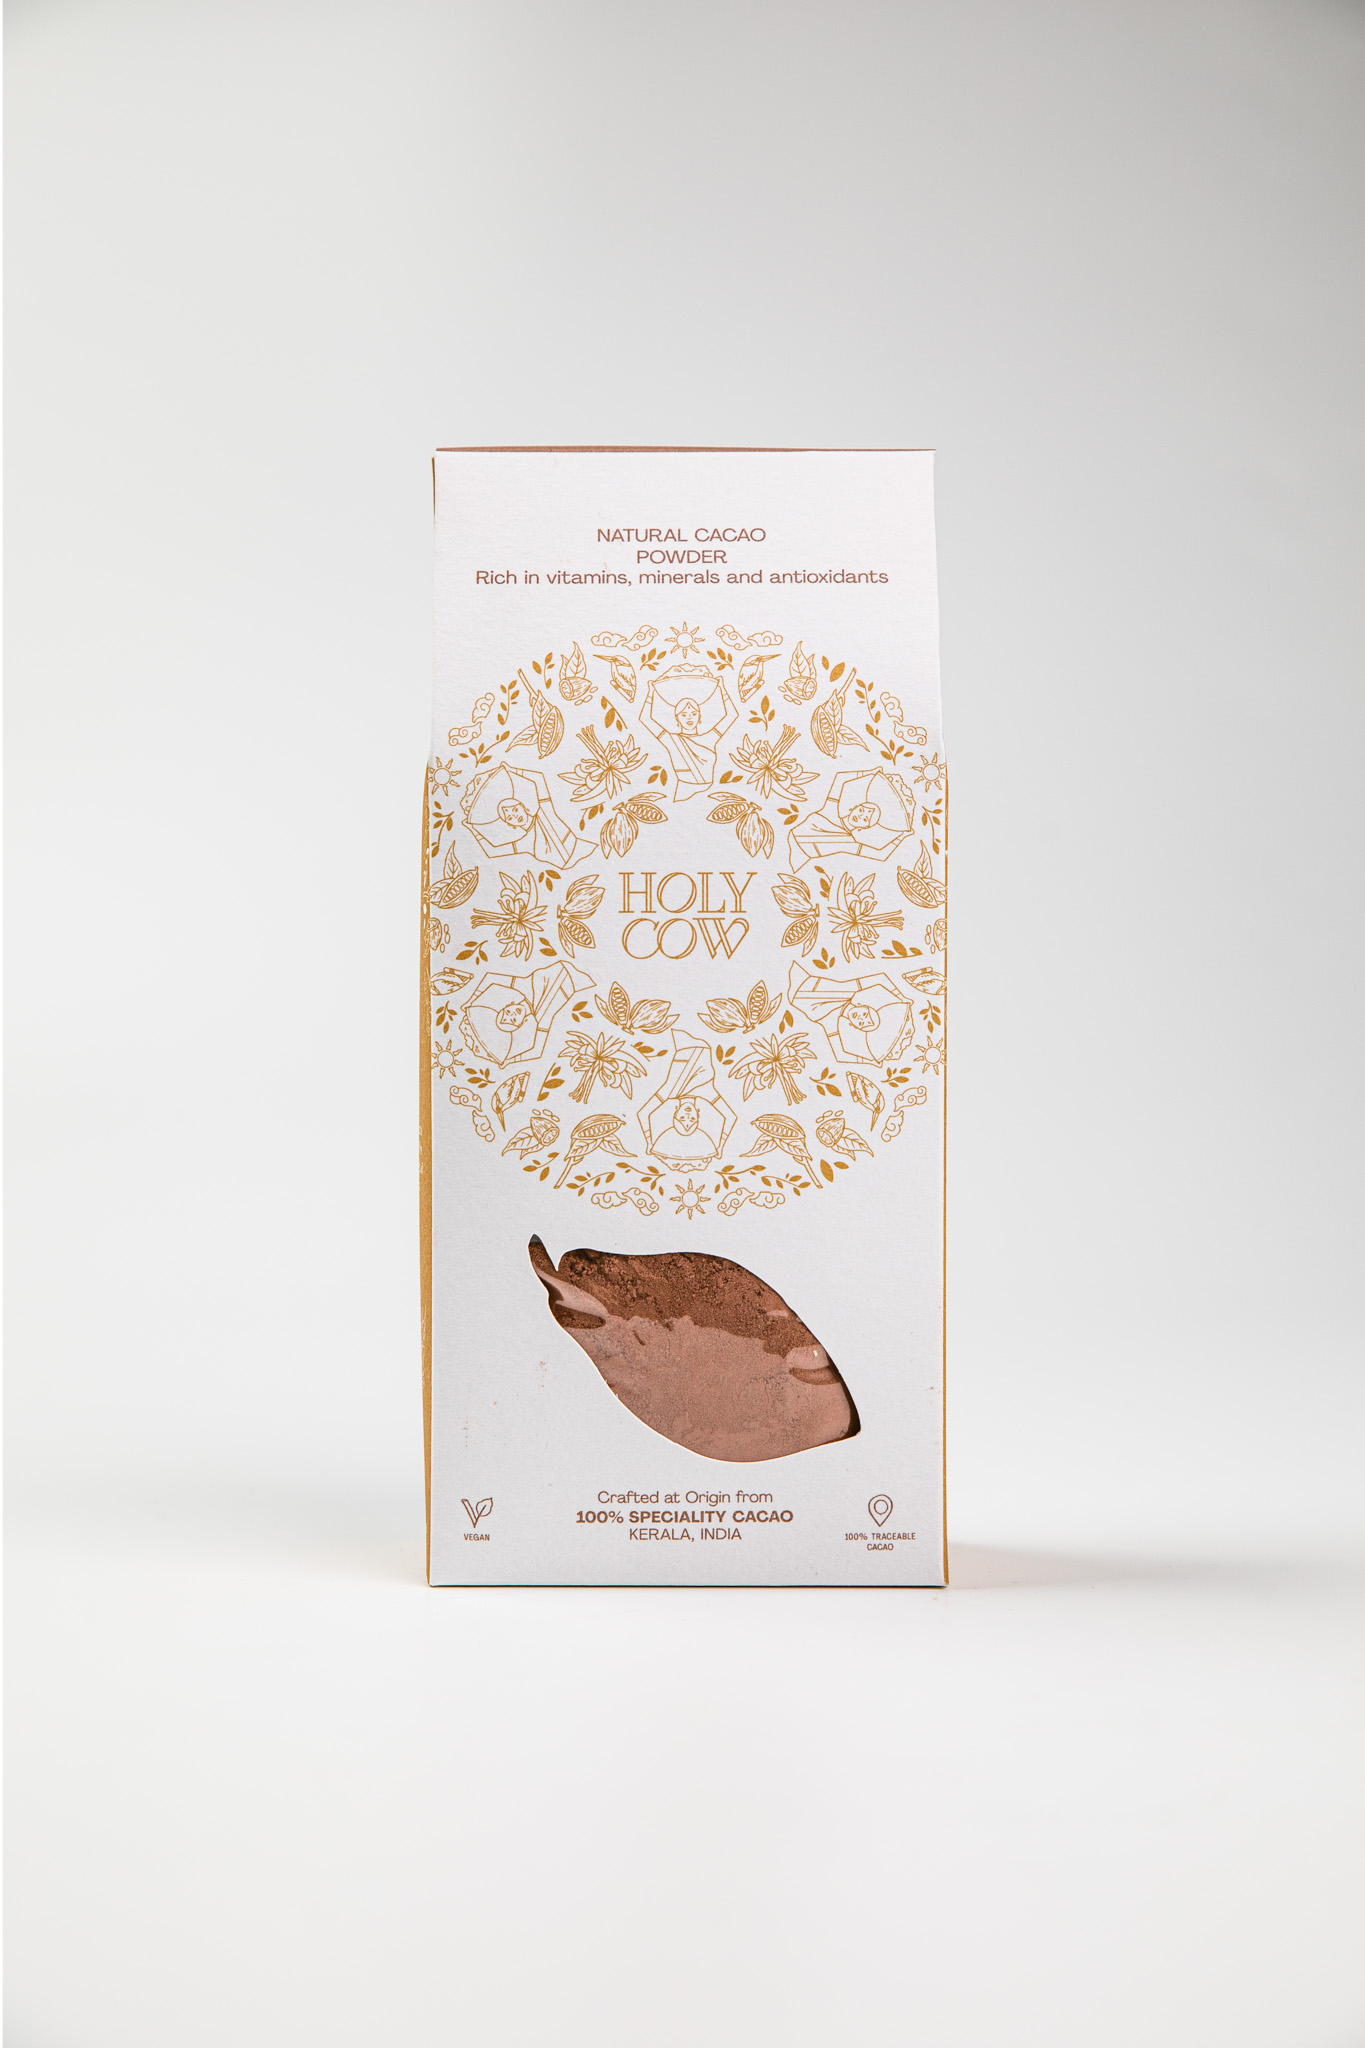 HOLY COW – Cacaopoeder